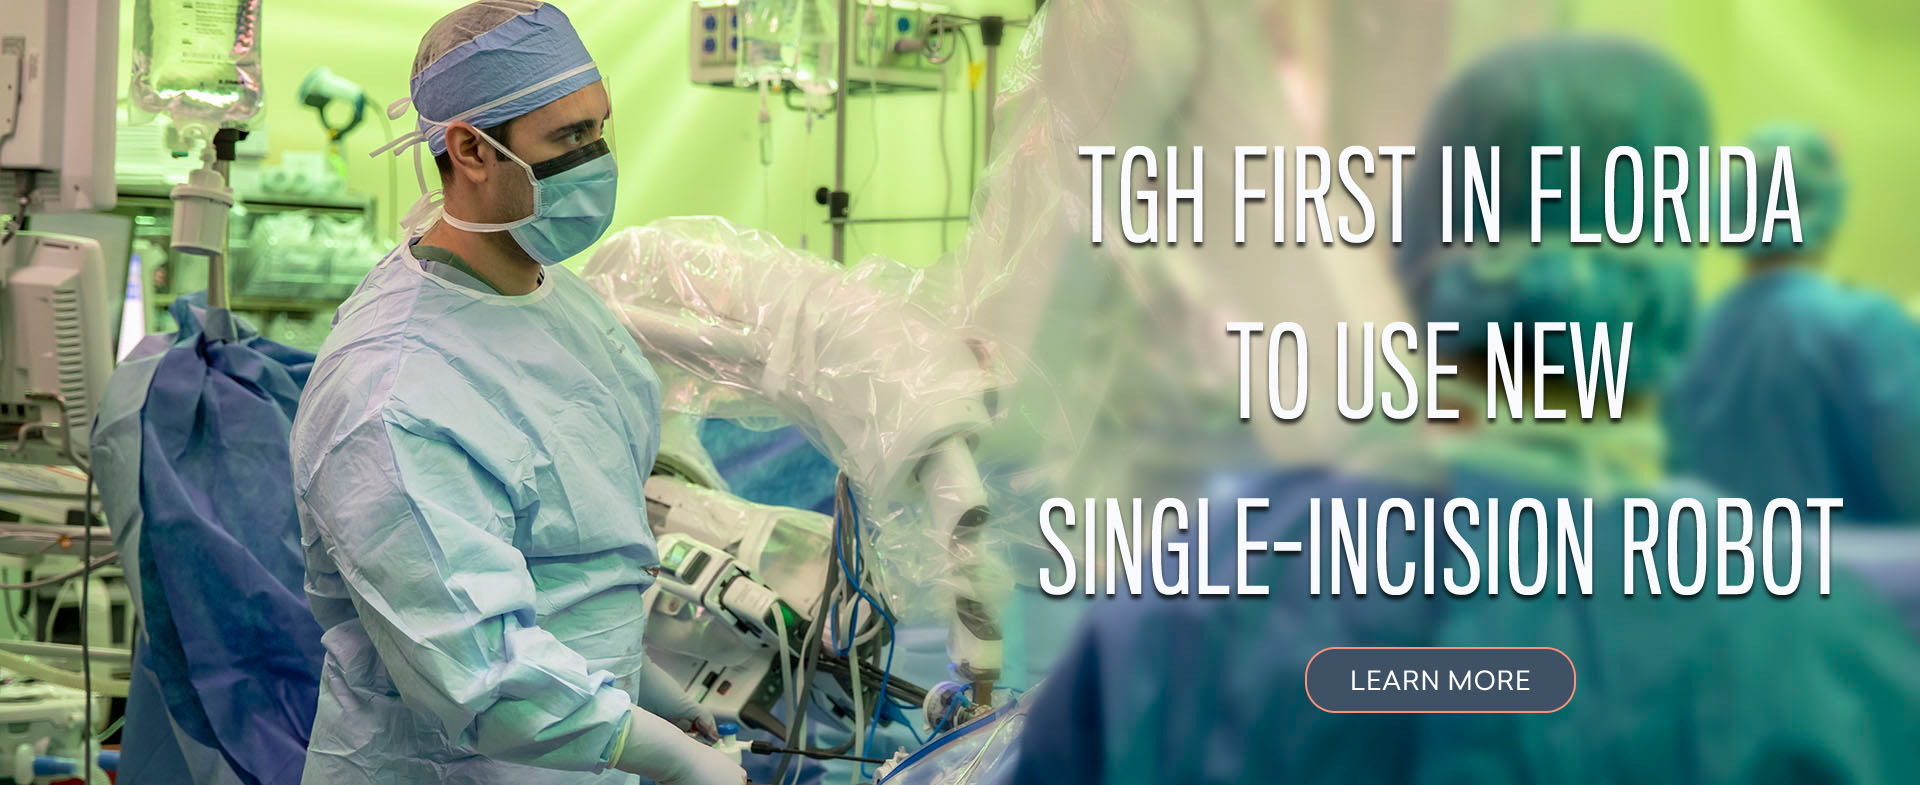 Image of surgical staff during robotic surgery and copy that reads, TGH first in Florida to use new single-incision robot